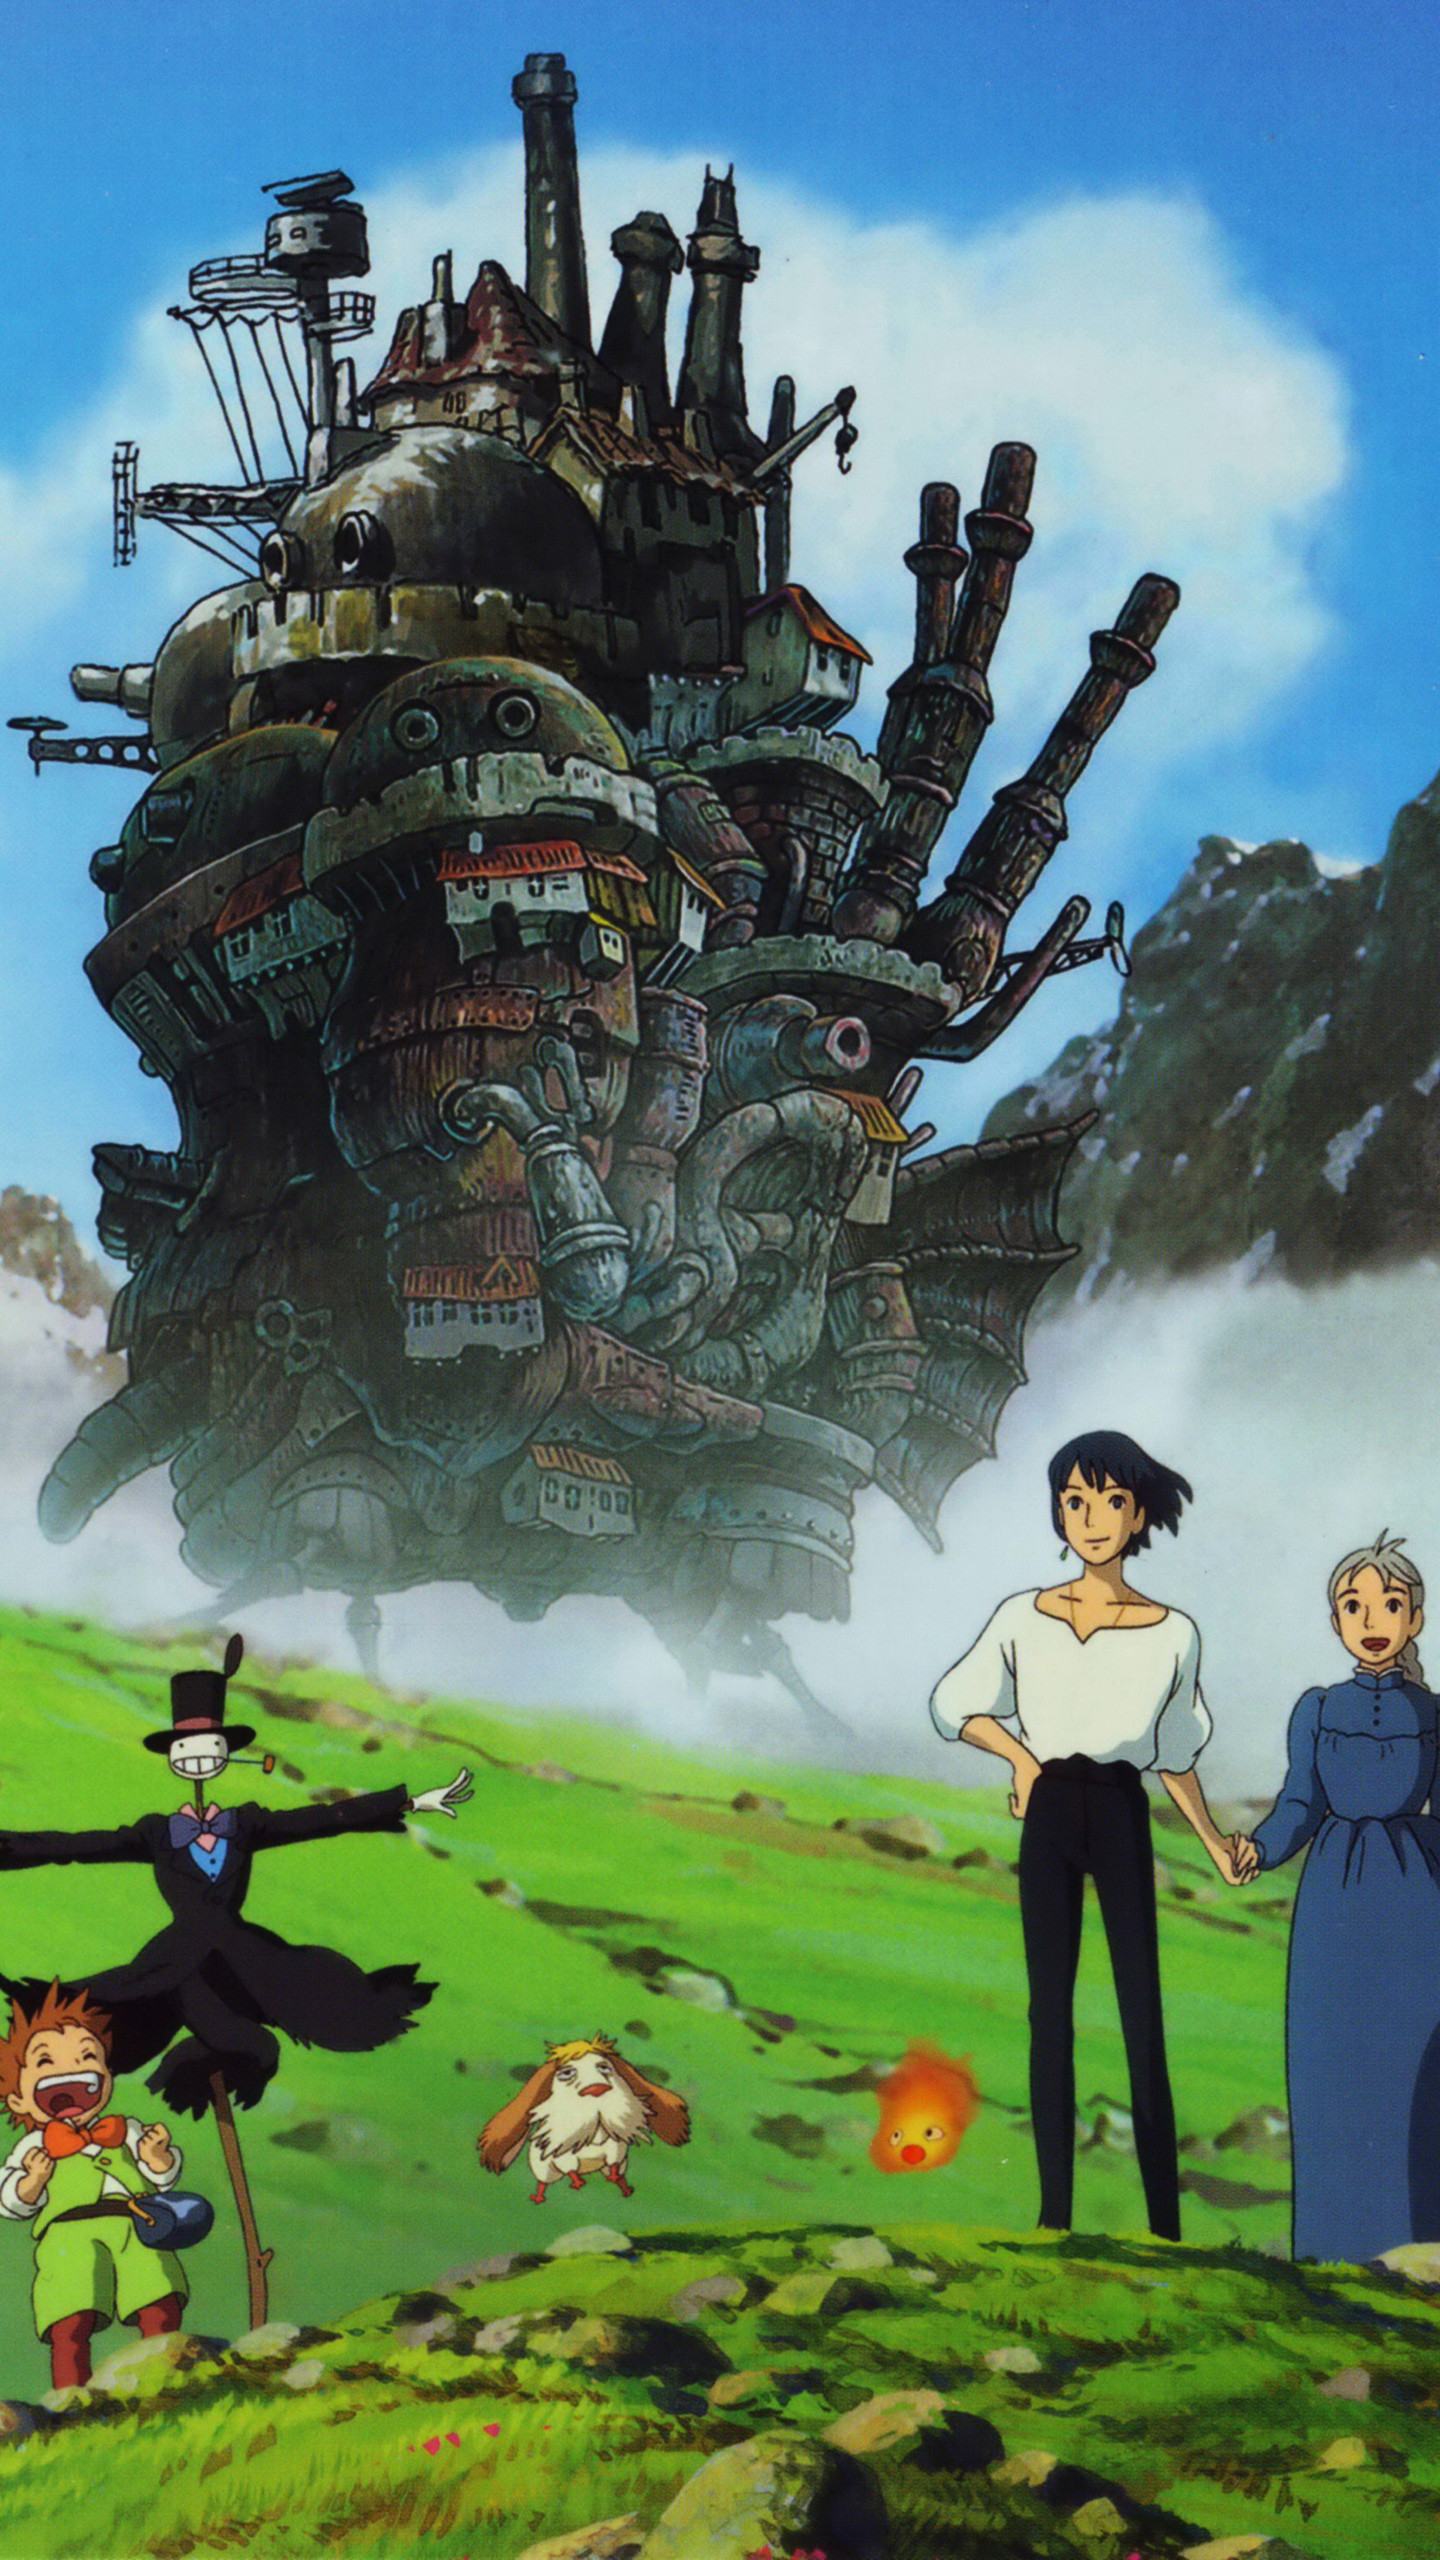 Howls Moving Castle Hd Wallpaper Howls Moving Castle Hd Wallpaper 69 Images